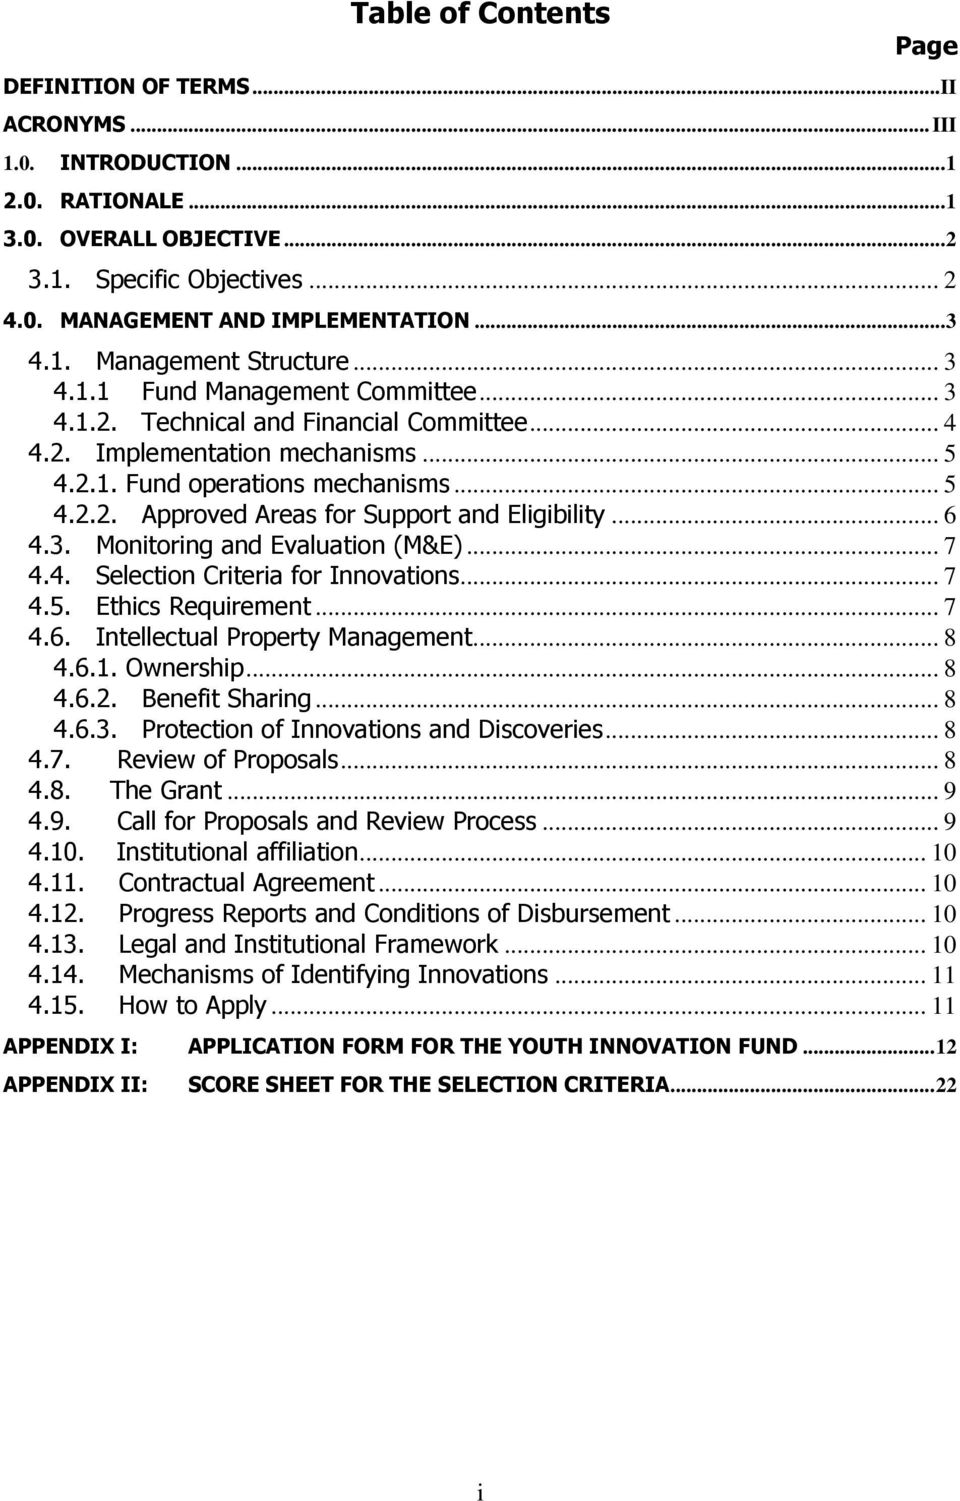 .. 6 4.3. Monitoring and Evaluation (M&E)... 7 4.4. Selection Criteria for Innovations... 7 4.5. Ethics Requirement... 7 4.6. Intellectual Property Management... 8 4.6.1. Ownership... 8 4.6.2.